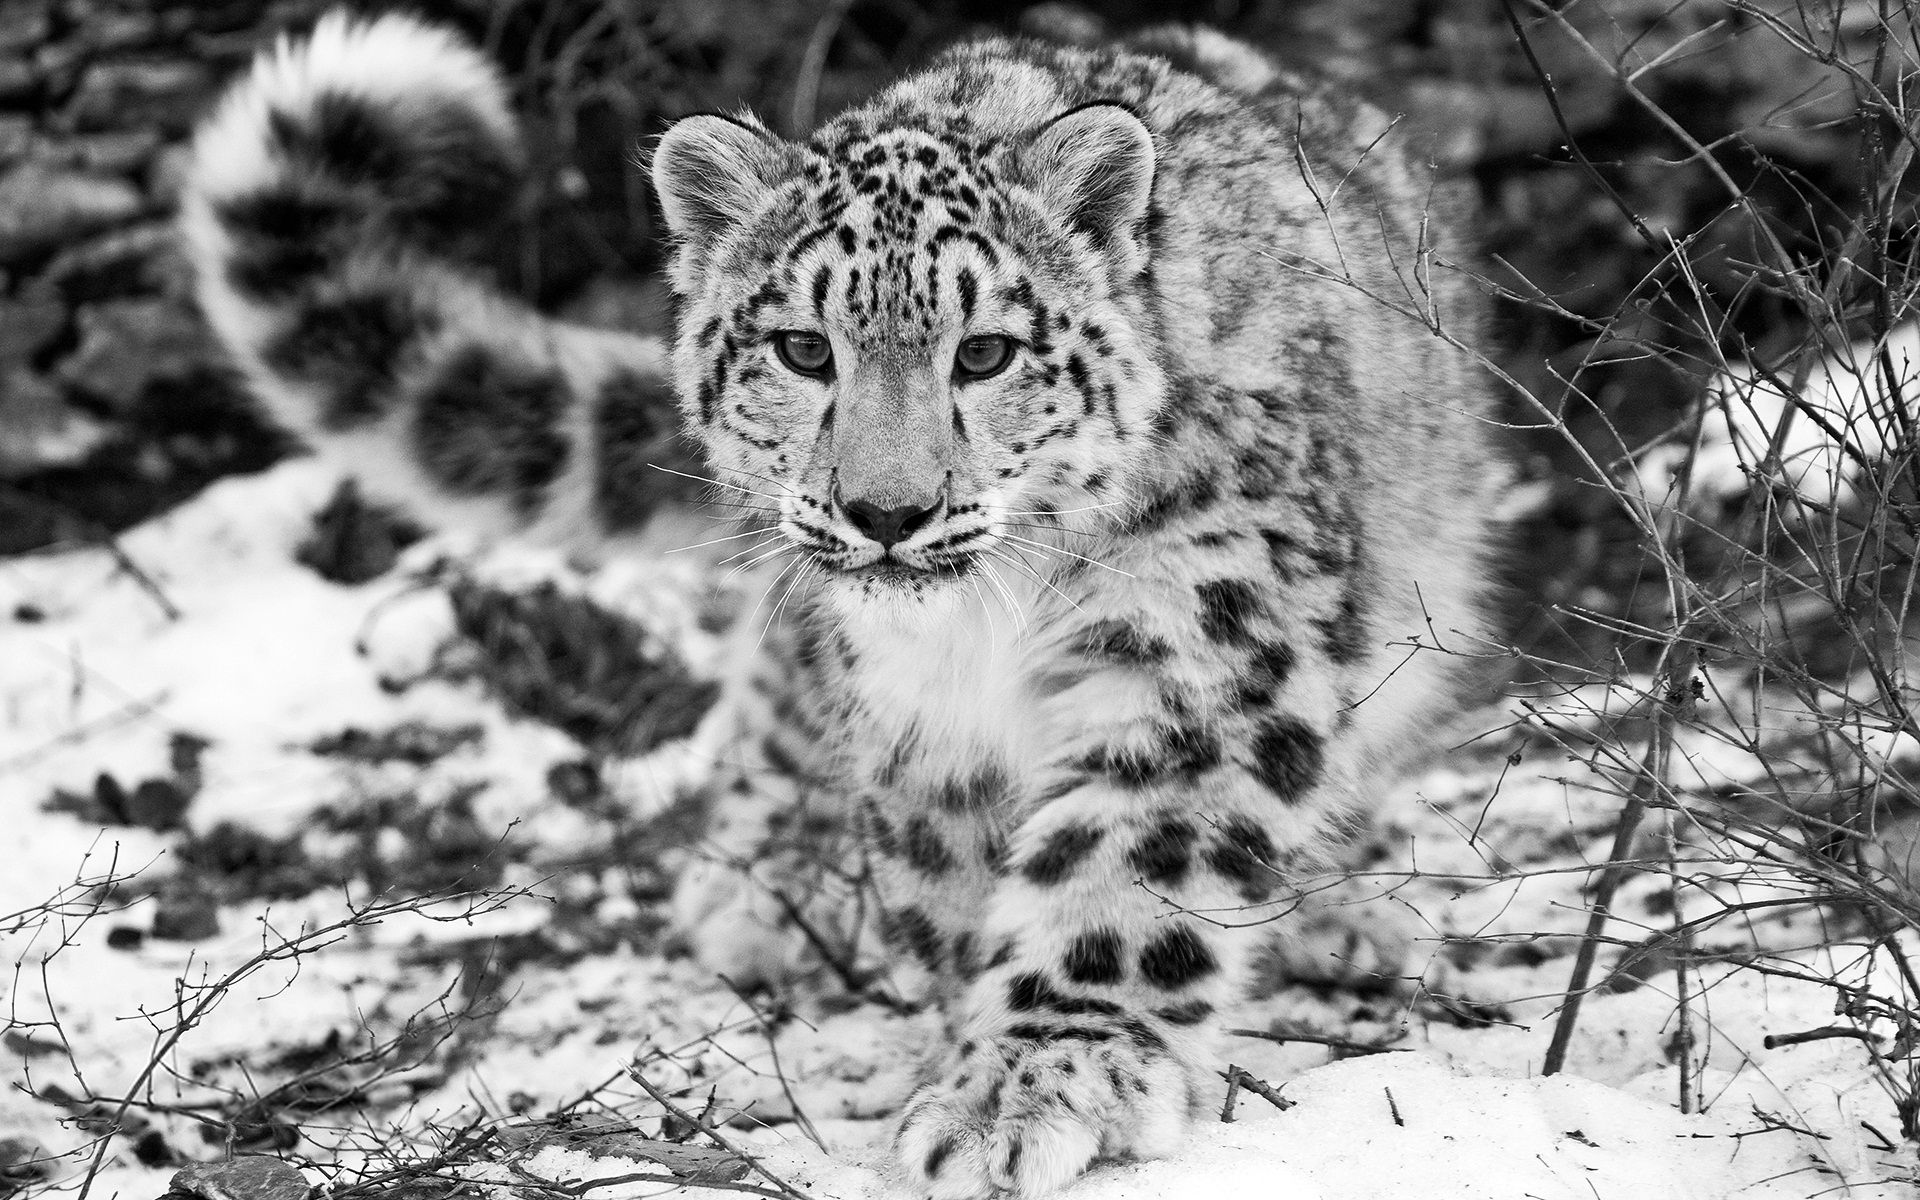 The Snow Leopard 4179311 Amazing Animals Pinterest Leopards